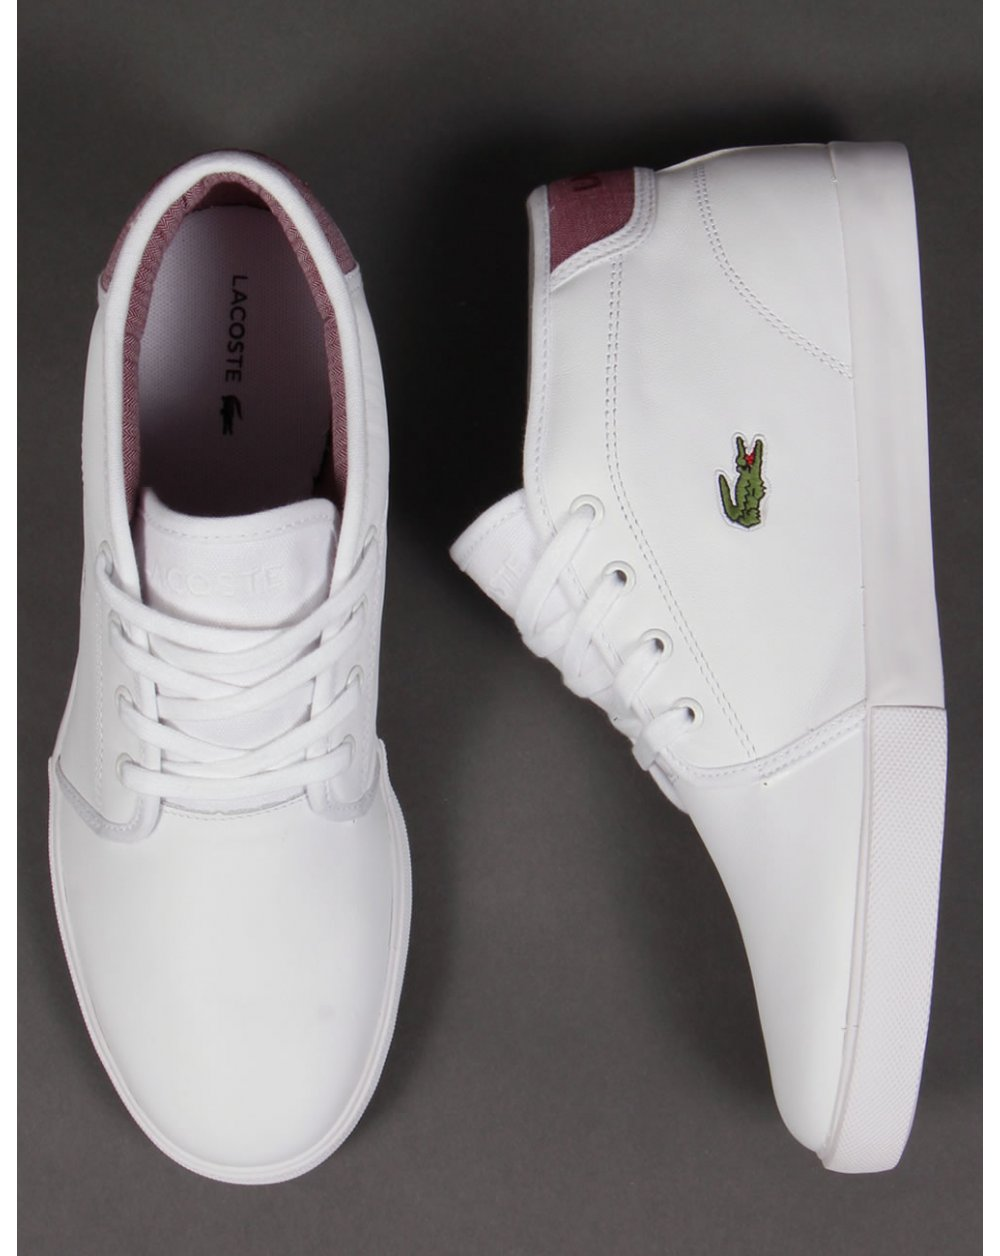 bac4c4df251d09 Lacoste Ampthill Leather Trainers White